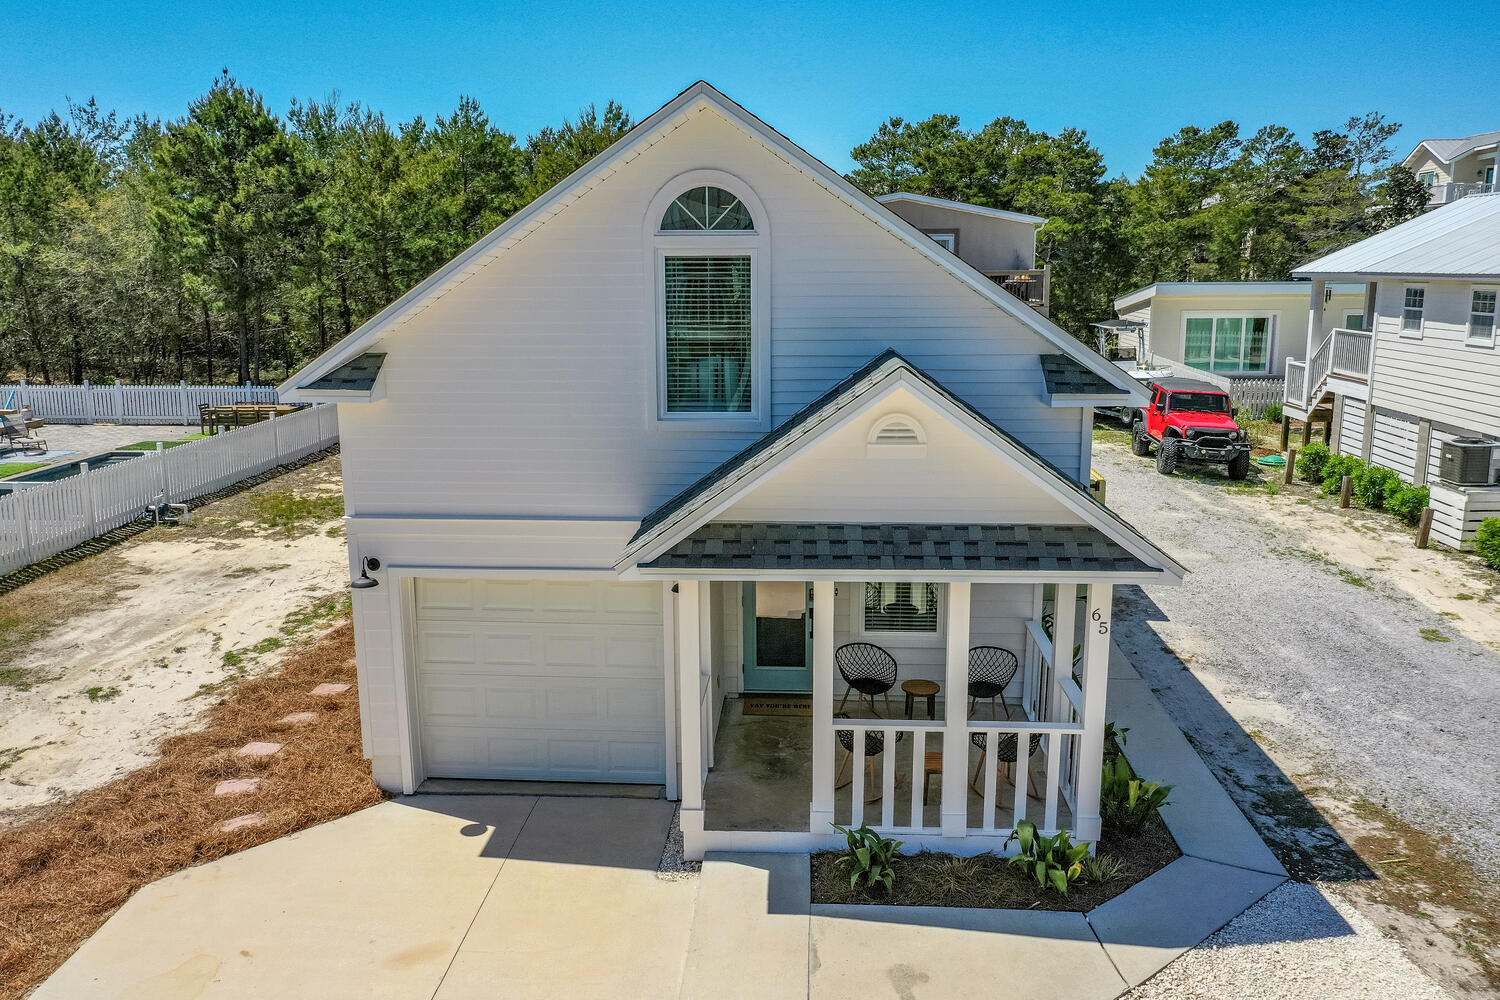 TOTALLY RENOVATED FULLY FURNISHED BEACH COTTAGE IN SEAGROVE ON THE SOUTH SIDE OF 30A! BEACH ACCESS IS WALKABLE AS IT IS ONLY ABOUT 1/4 MILE! NO HOA!  Exterior...New paint, new doors, new landscaping, new fence. Interior...new LVP flooring throughout, new quartz countertops, new sinks and faucets, new crown molding, new custom glass and tile shower in both masters, new lighting,  and ceiling fans throughout, new interior doors, duct work to make entire house run on central A/C. All new furniture and mattresses.**Buyer to verify all measurement